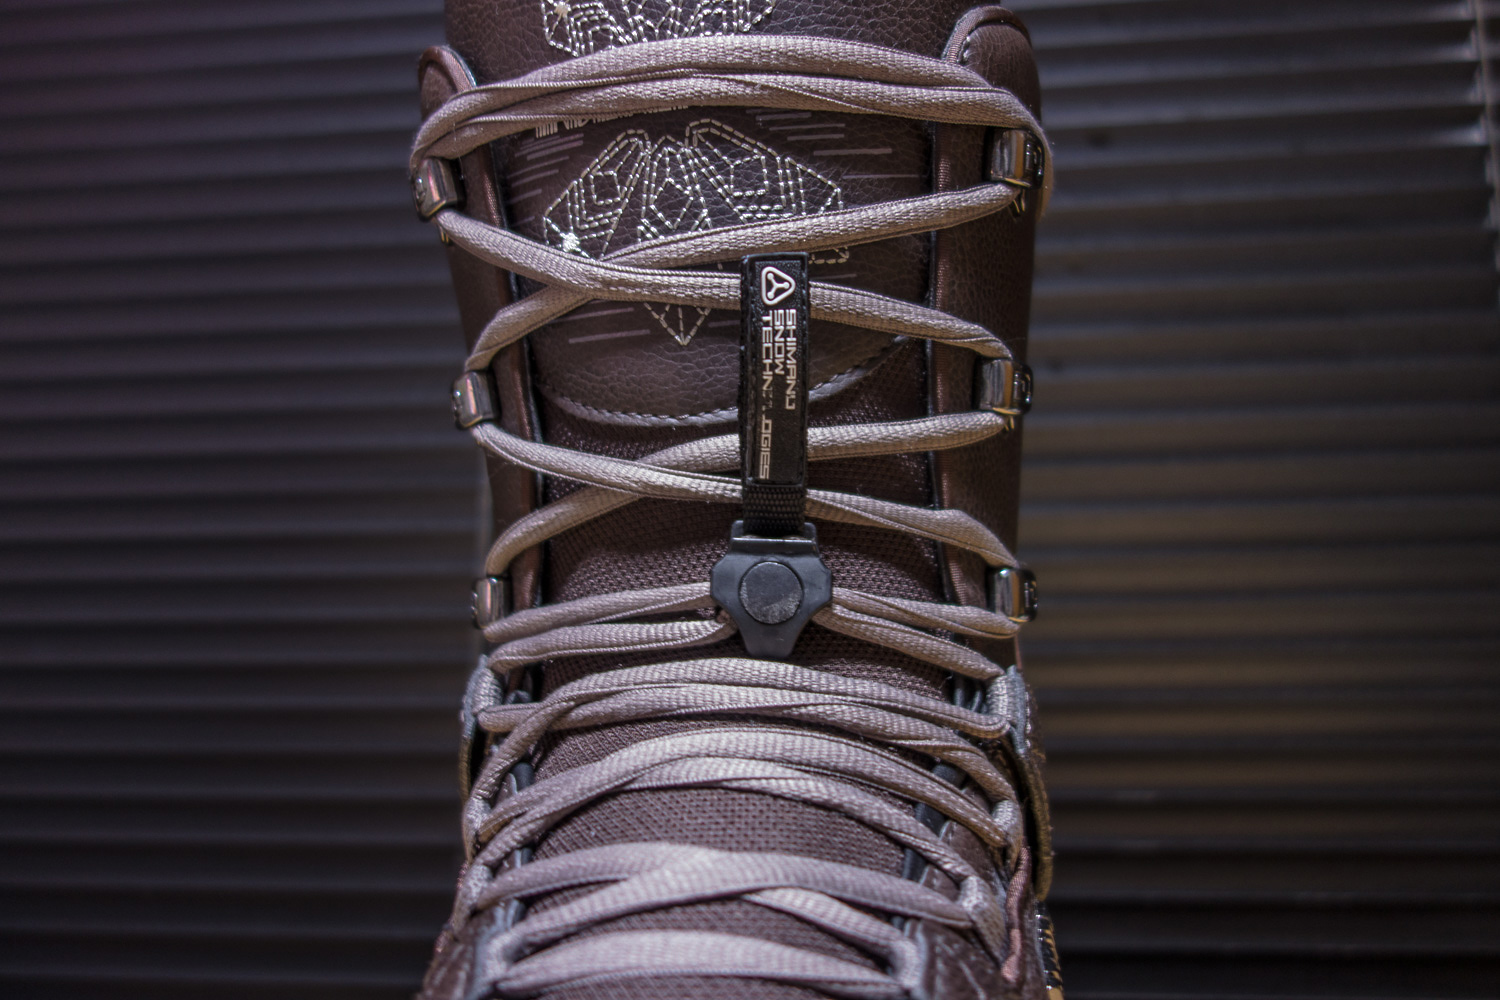 shimano_shoe_lace_rock-1.jpg